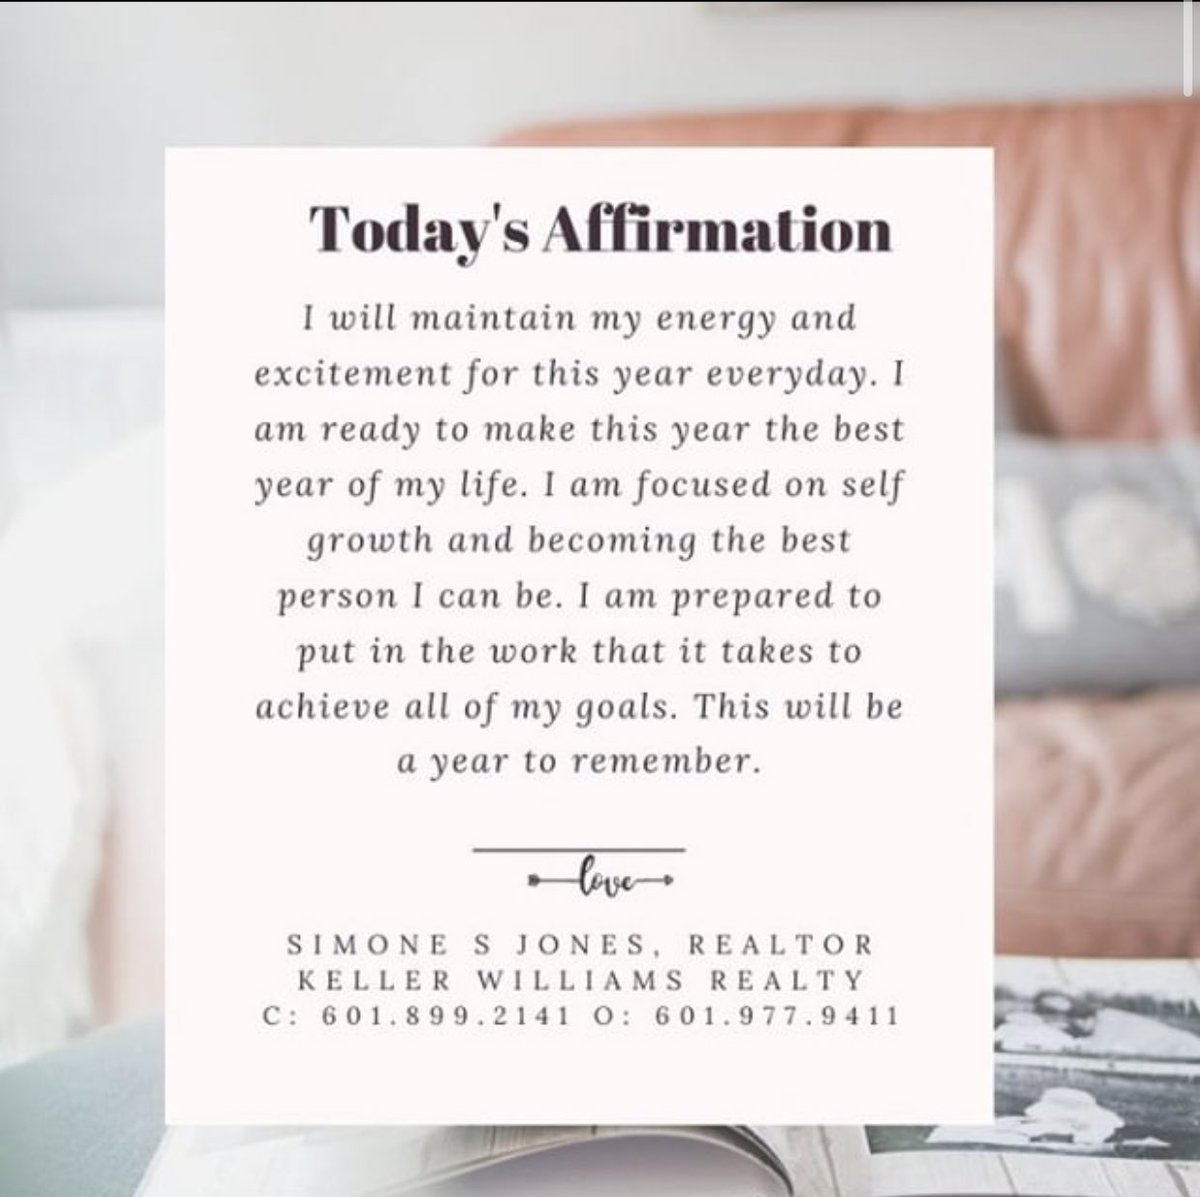 Say aloud. Own it. Believe in yourself. Remind yourself you got this! #turningdreamsintoreality #realestate #realestateagent #realtor #realtorlife #realestateinvesting #mississippi #mississippirealestate #mississippirealtor #missississippirealestateagent #explorepagepic.twitter.com/IdlASOuy0Q